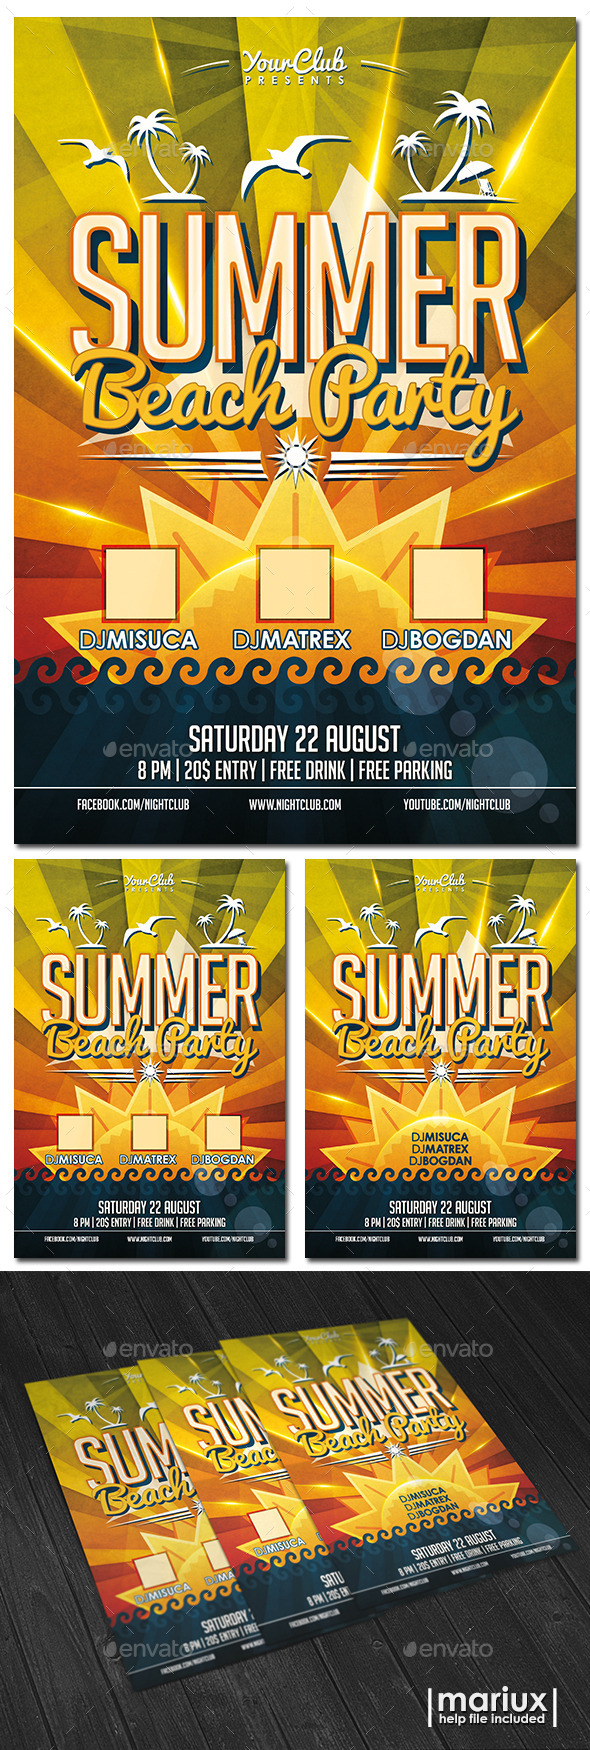 GraphicRiver Summer Beach Party Flyer 11330697